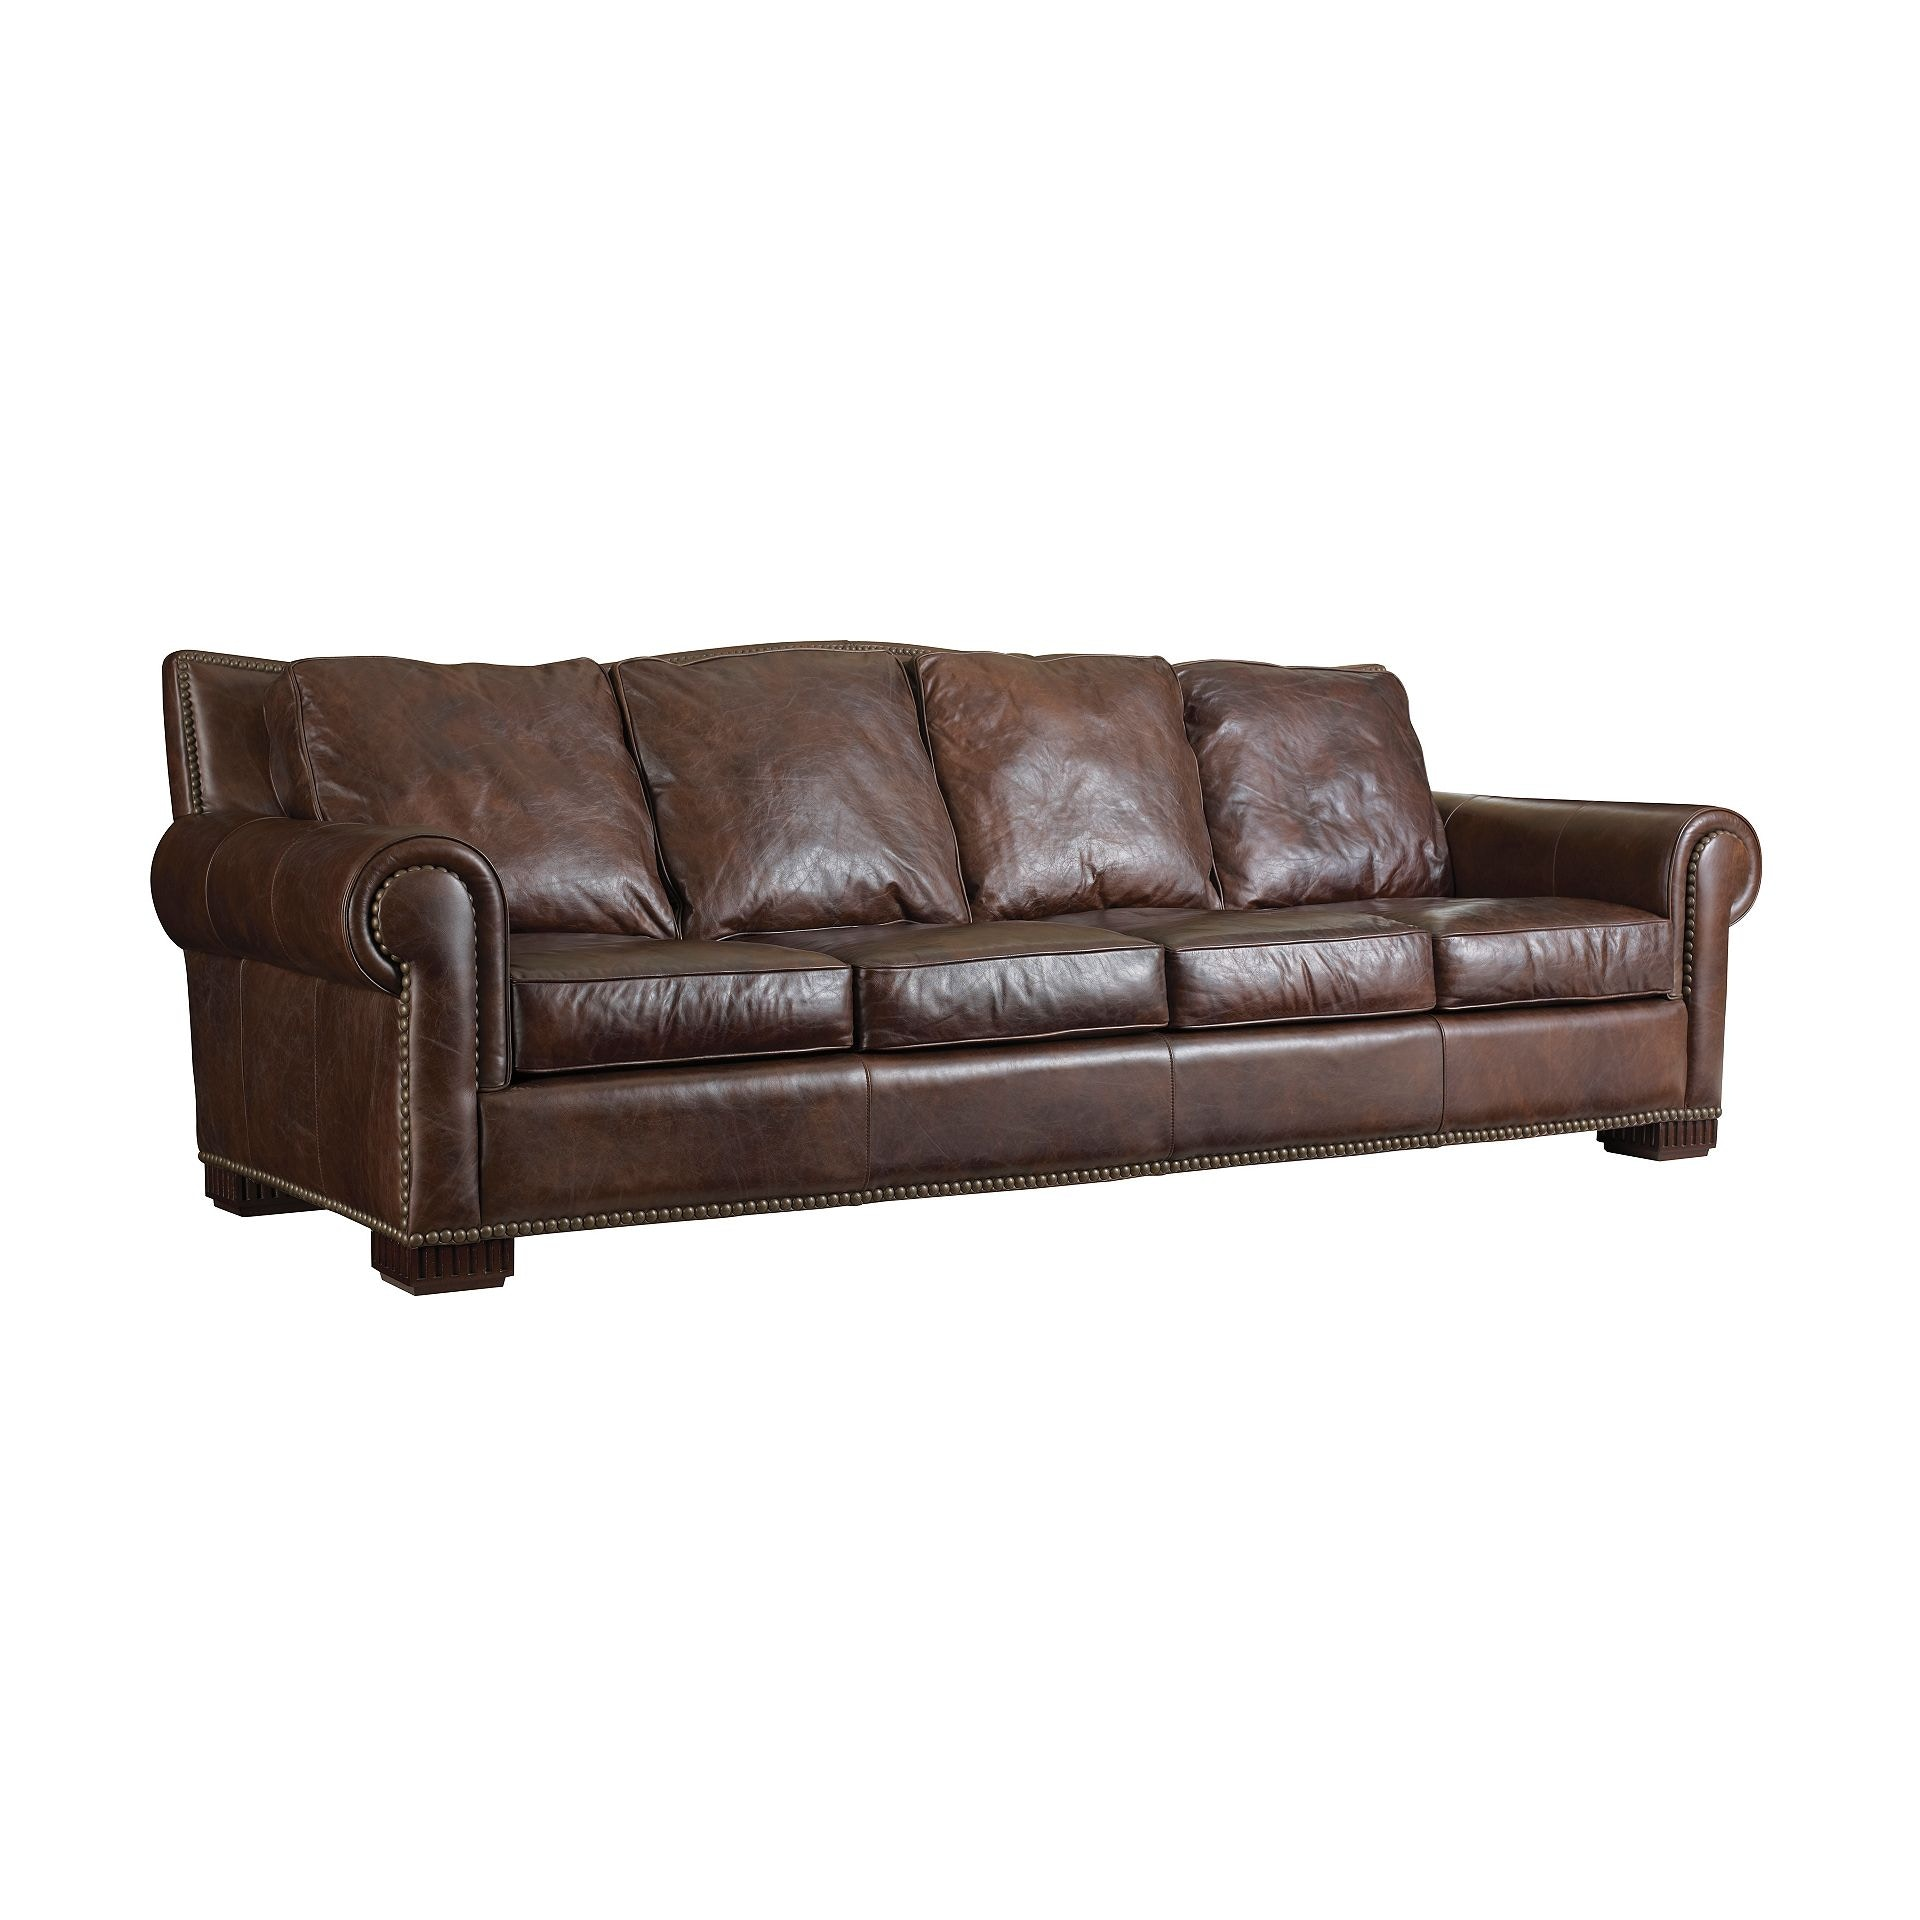 Awesome Henredon Furniture Henredon Leather Company Aberdeen Sofa IL7701 C